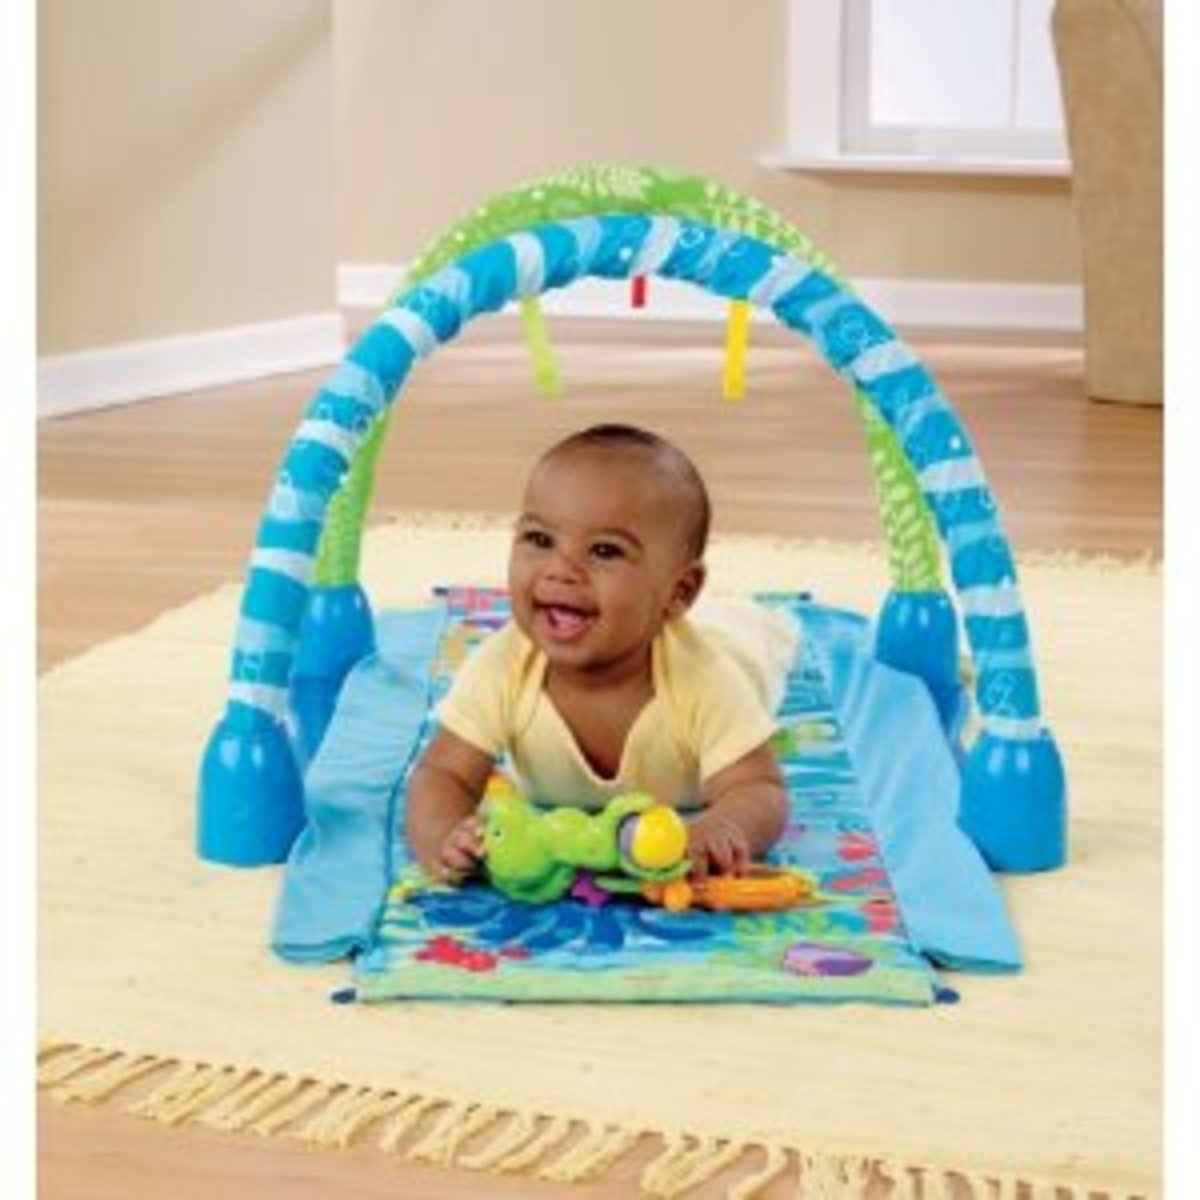 A tummy play toy for older babies